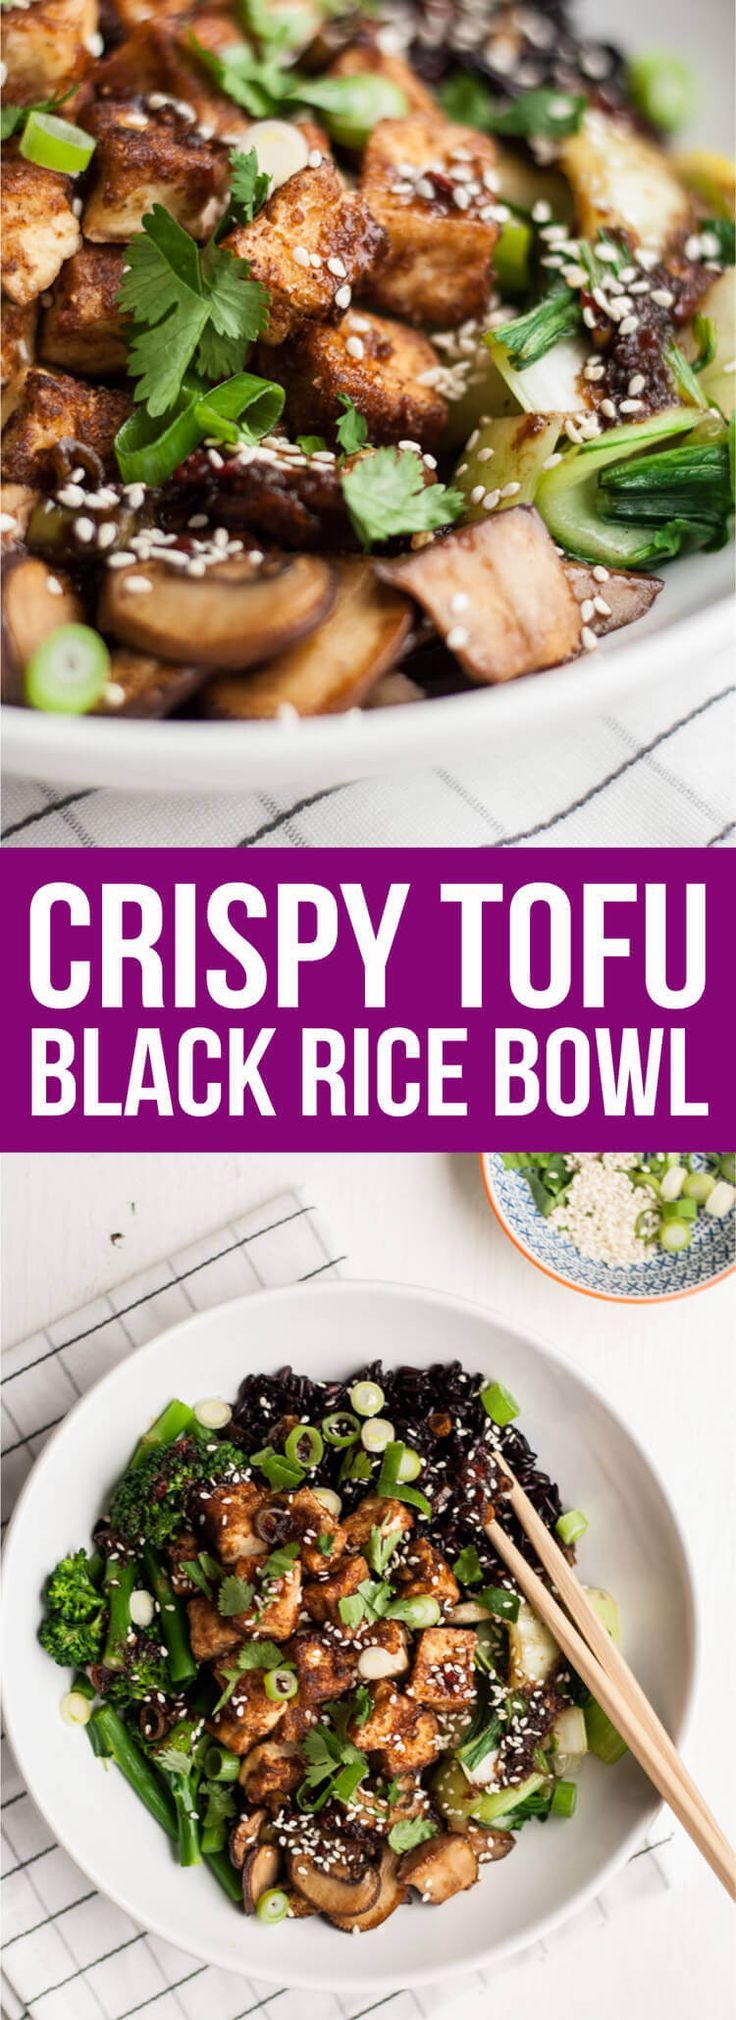 Crispy Tofu Black Rice Bowl - this vegan recipe is infused with Asian flavours, is quick and easy to make and is loaded with crispy, flavoursome tofu | http://eatloveeats.com